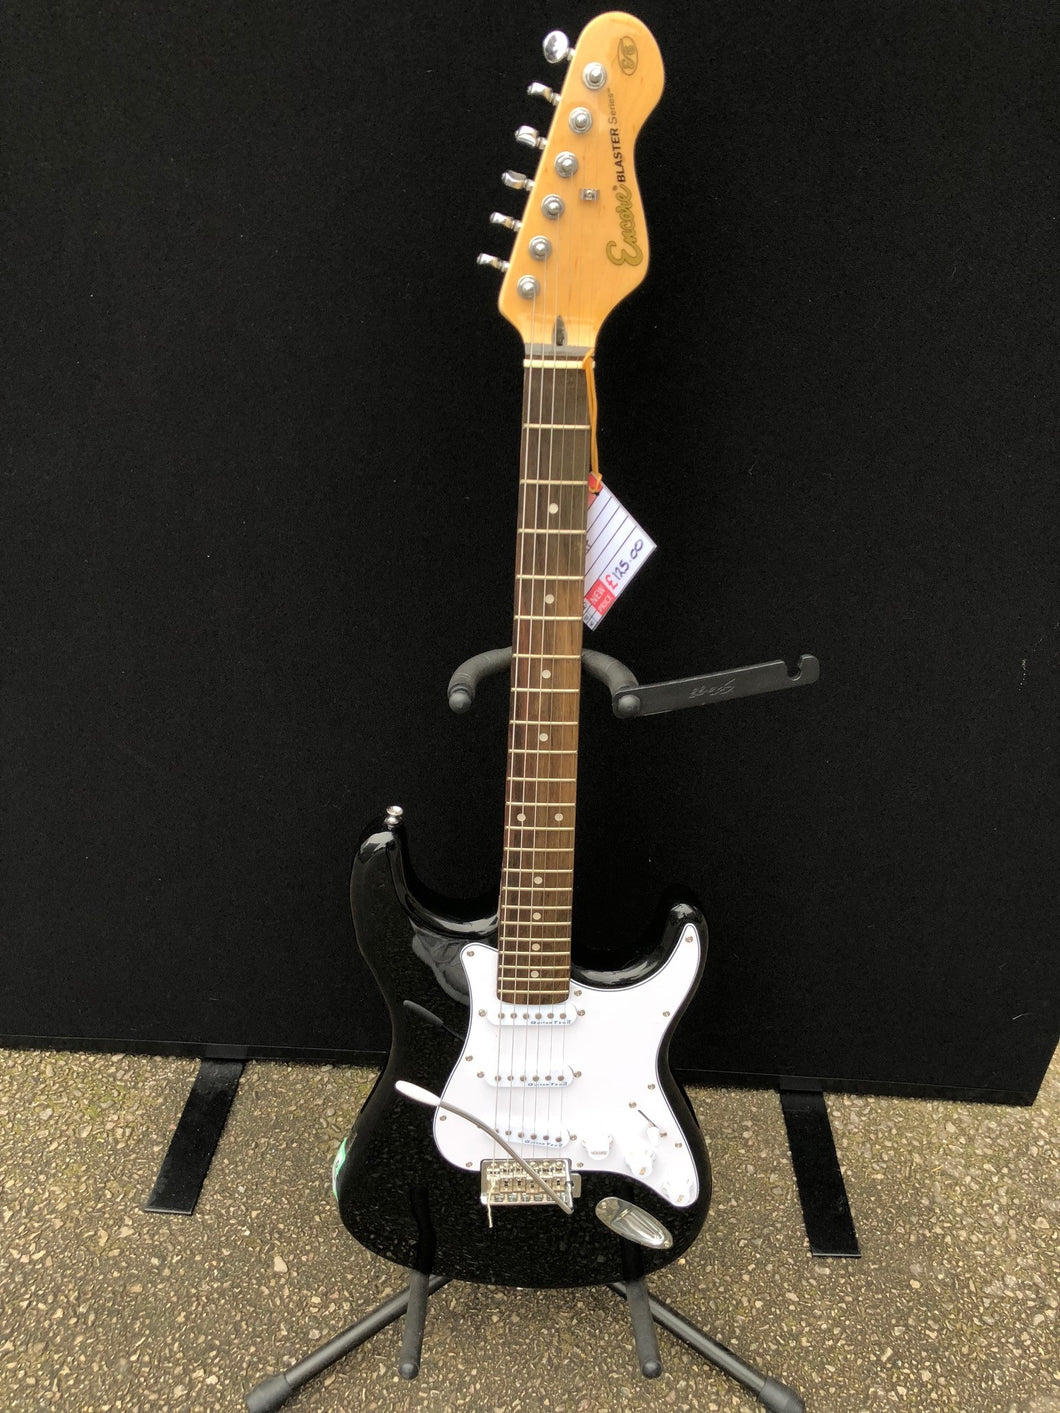 Encore Blaster Series Strat Electric Guitar Black/White - Flogit2us.com